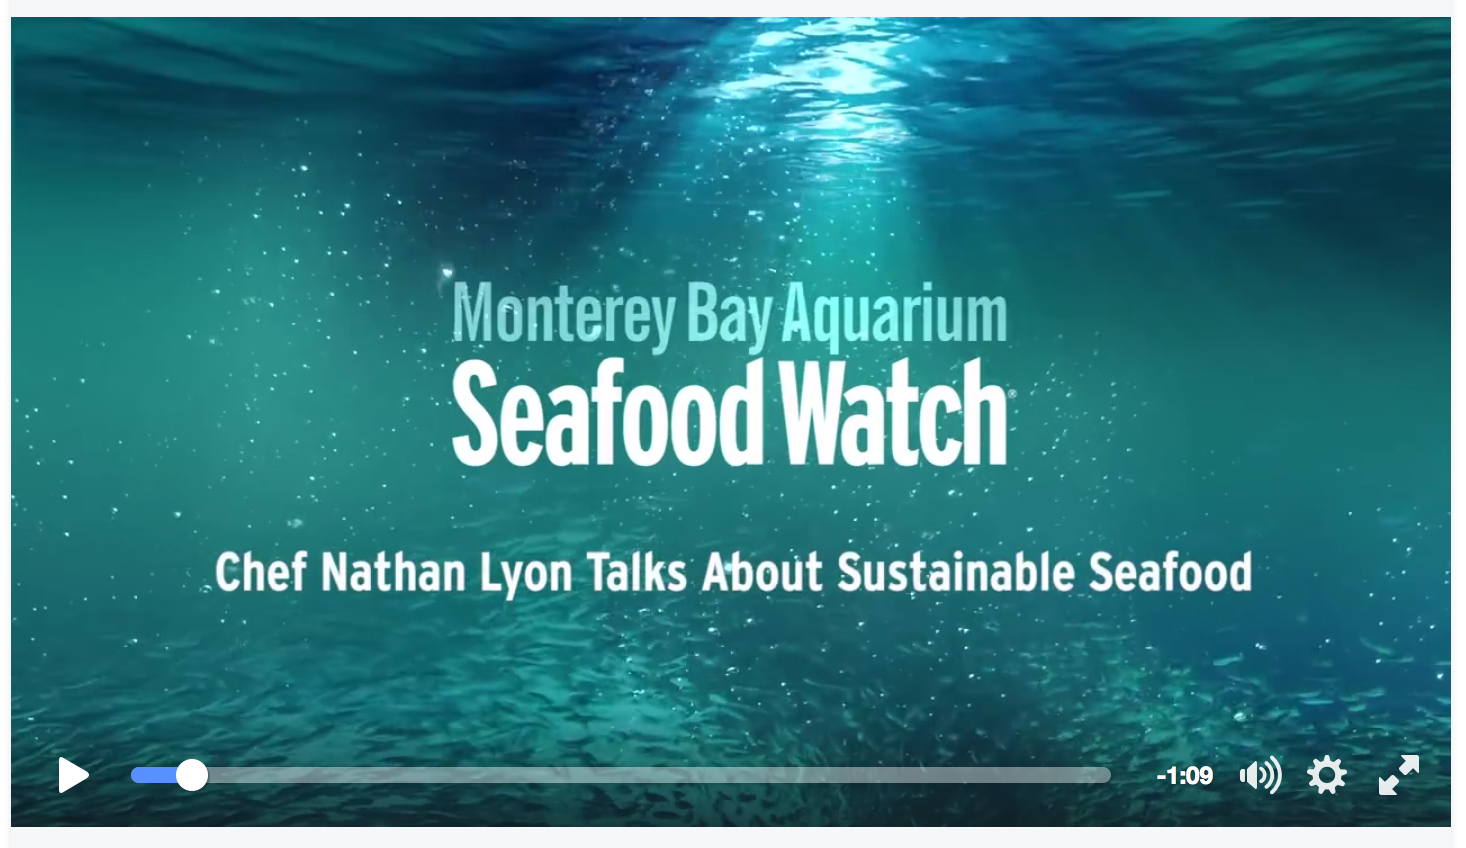 Spreading The Word About Sustainable Seafood